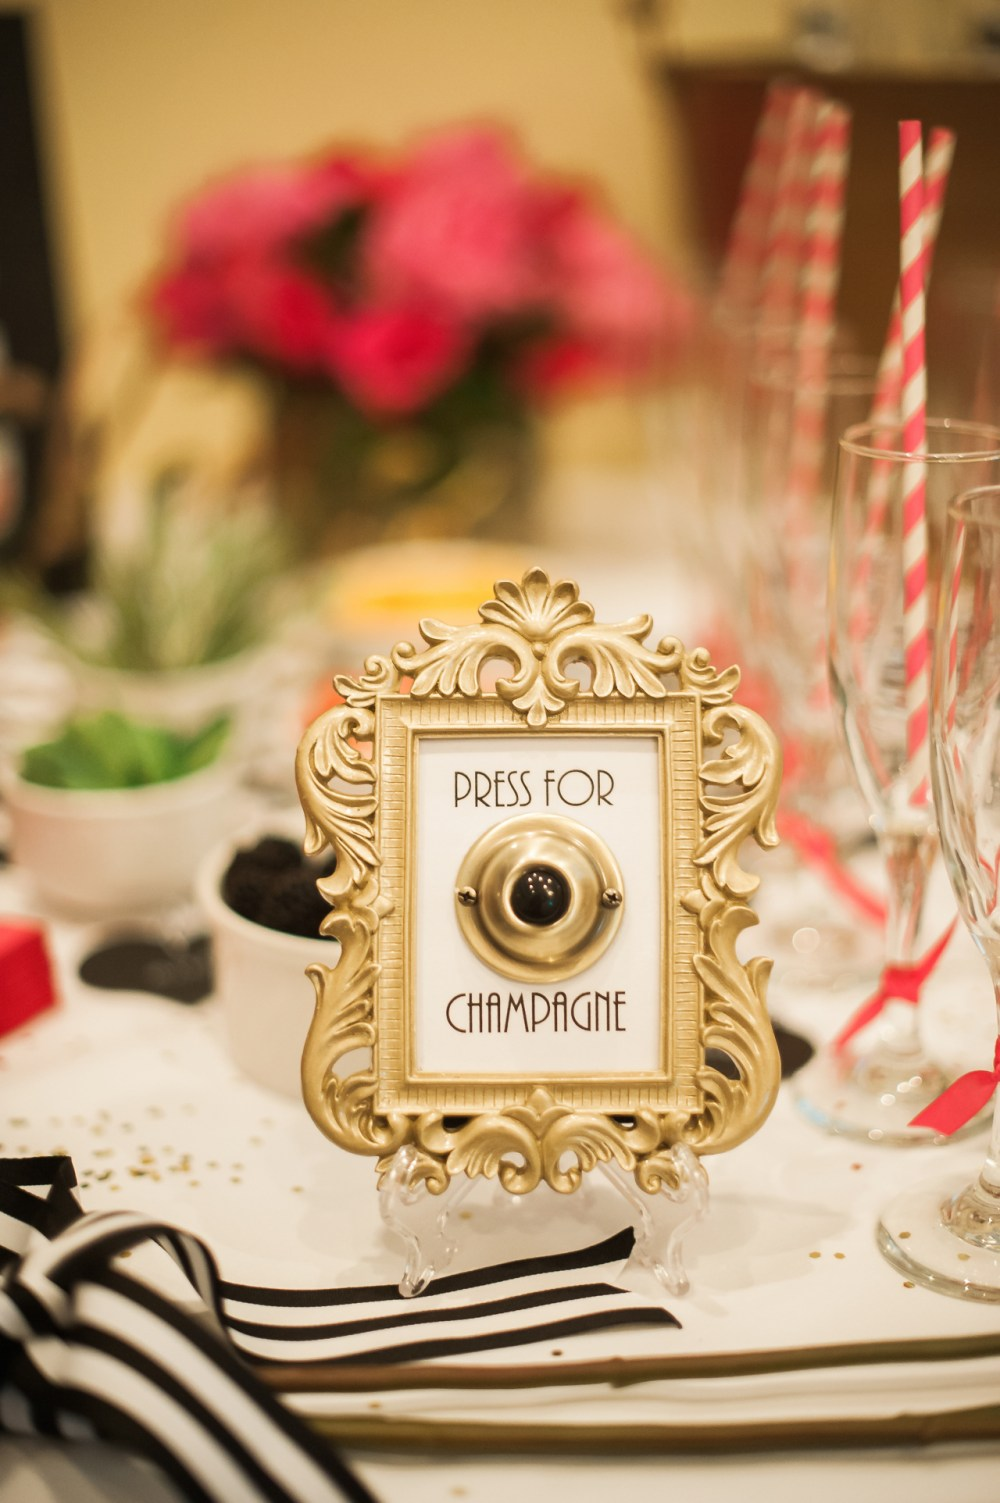 Press for Champagne Bridal Shower Decoration Bar Cart Fancy Things